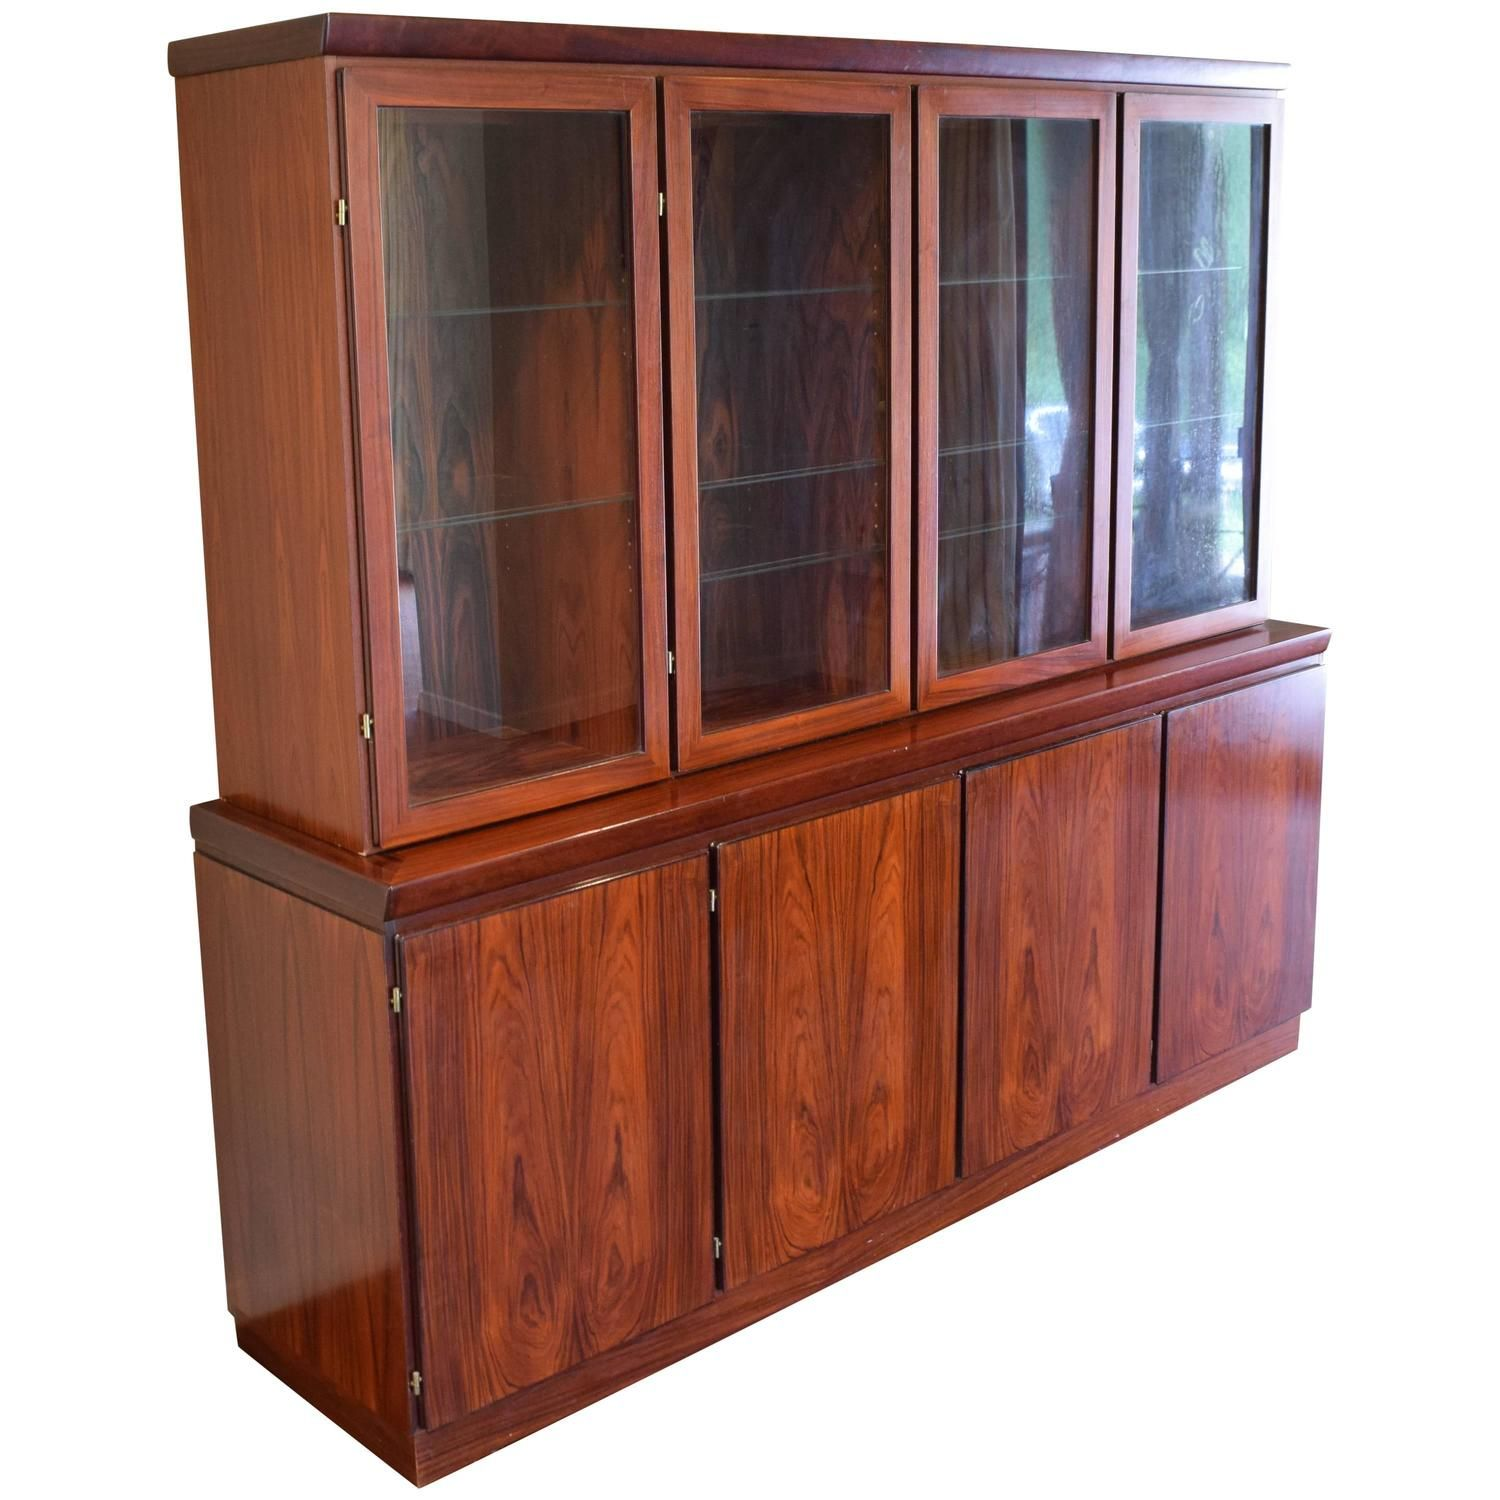 Display Kitchen Cabinets For Sale: Large Skovby Rosewood Display Cabinet